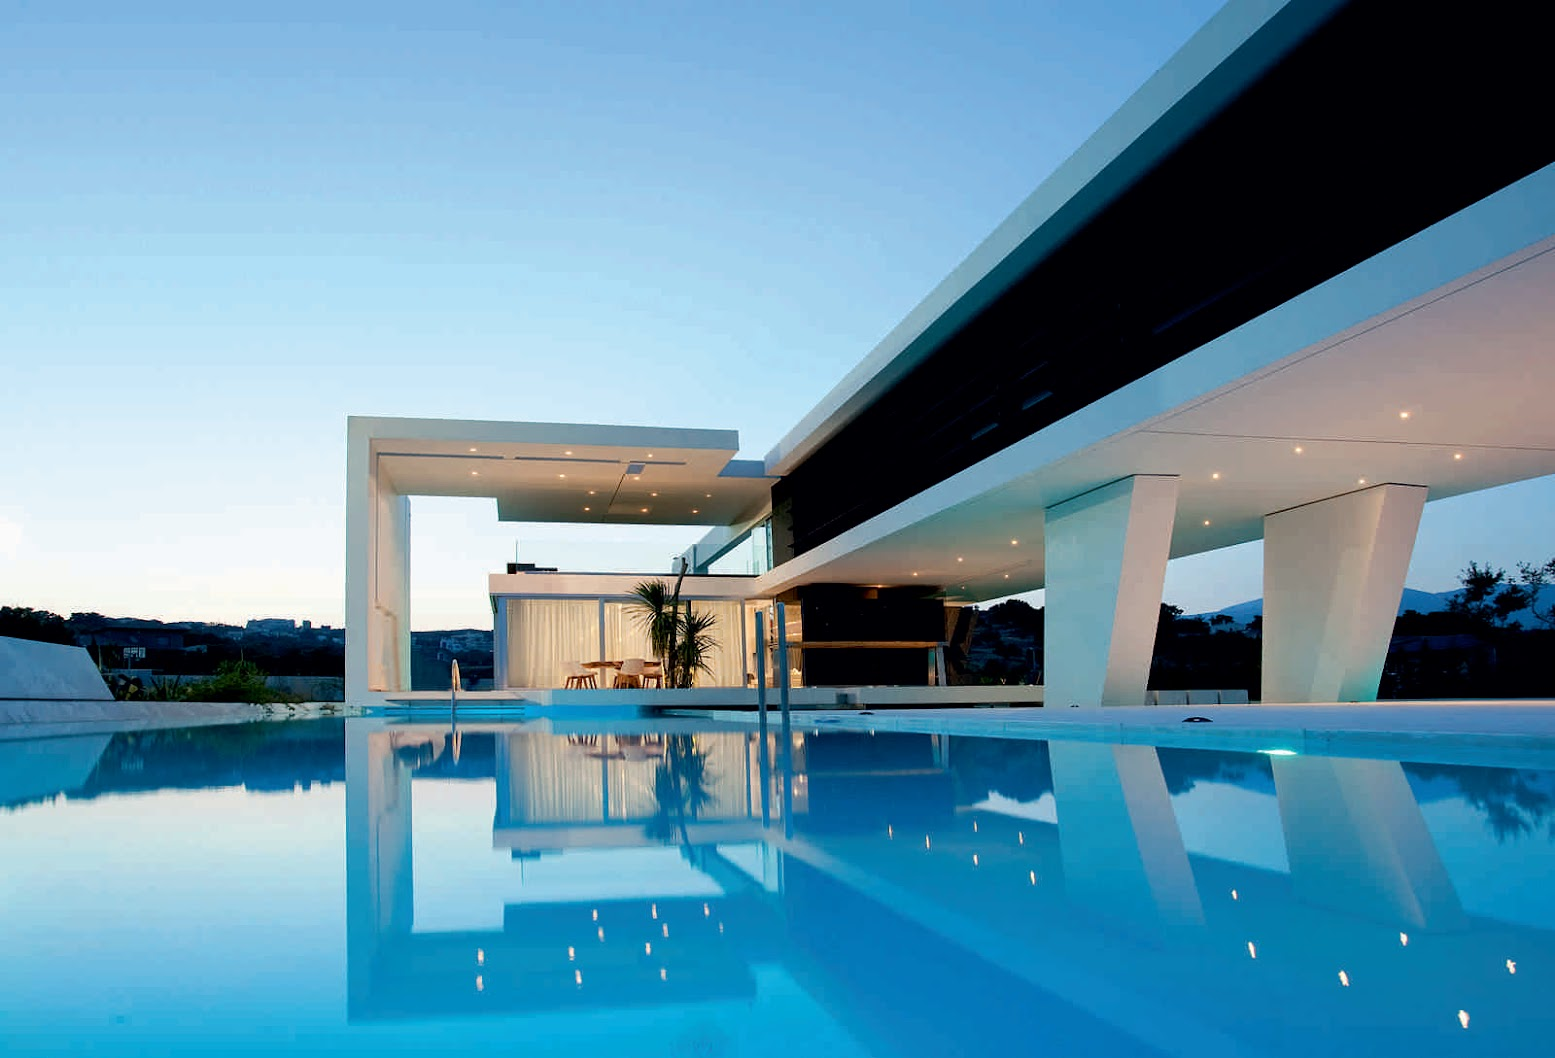 Atene, Grecia: [H3 HOUSE BY 314 ARCHITECTURE STUDIO]